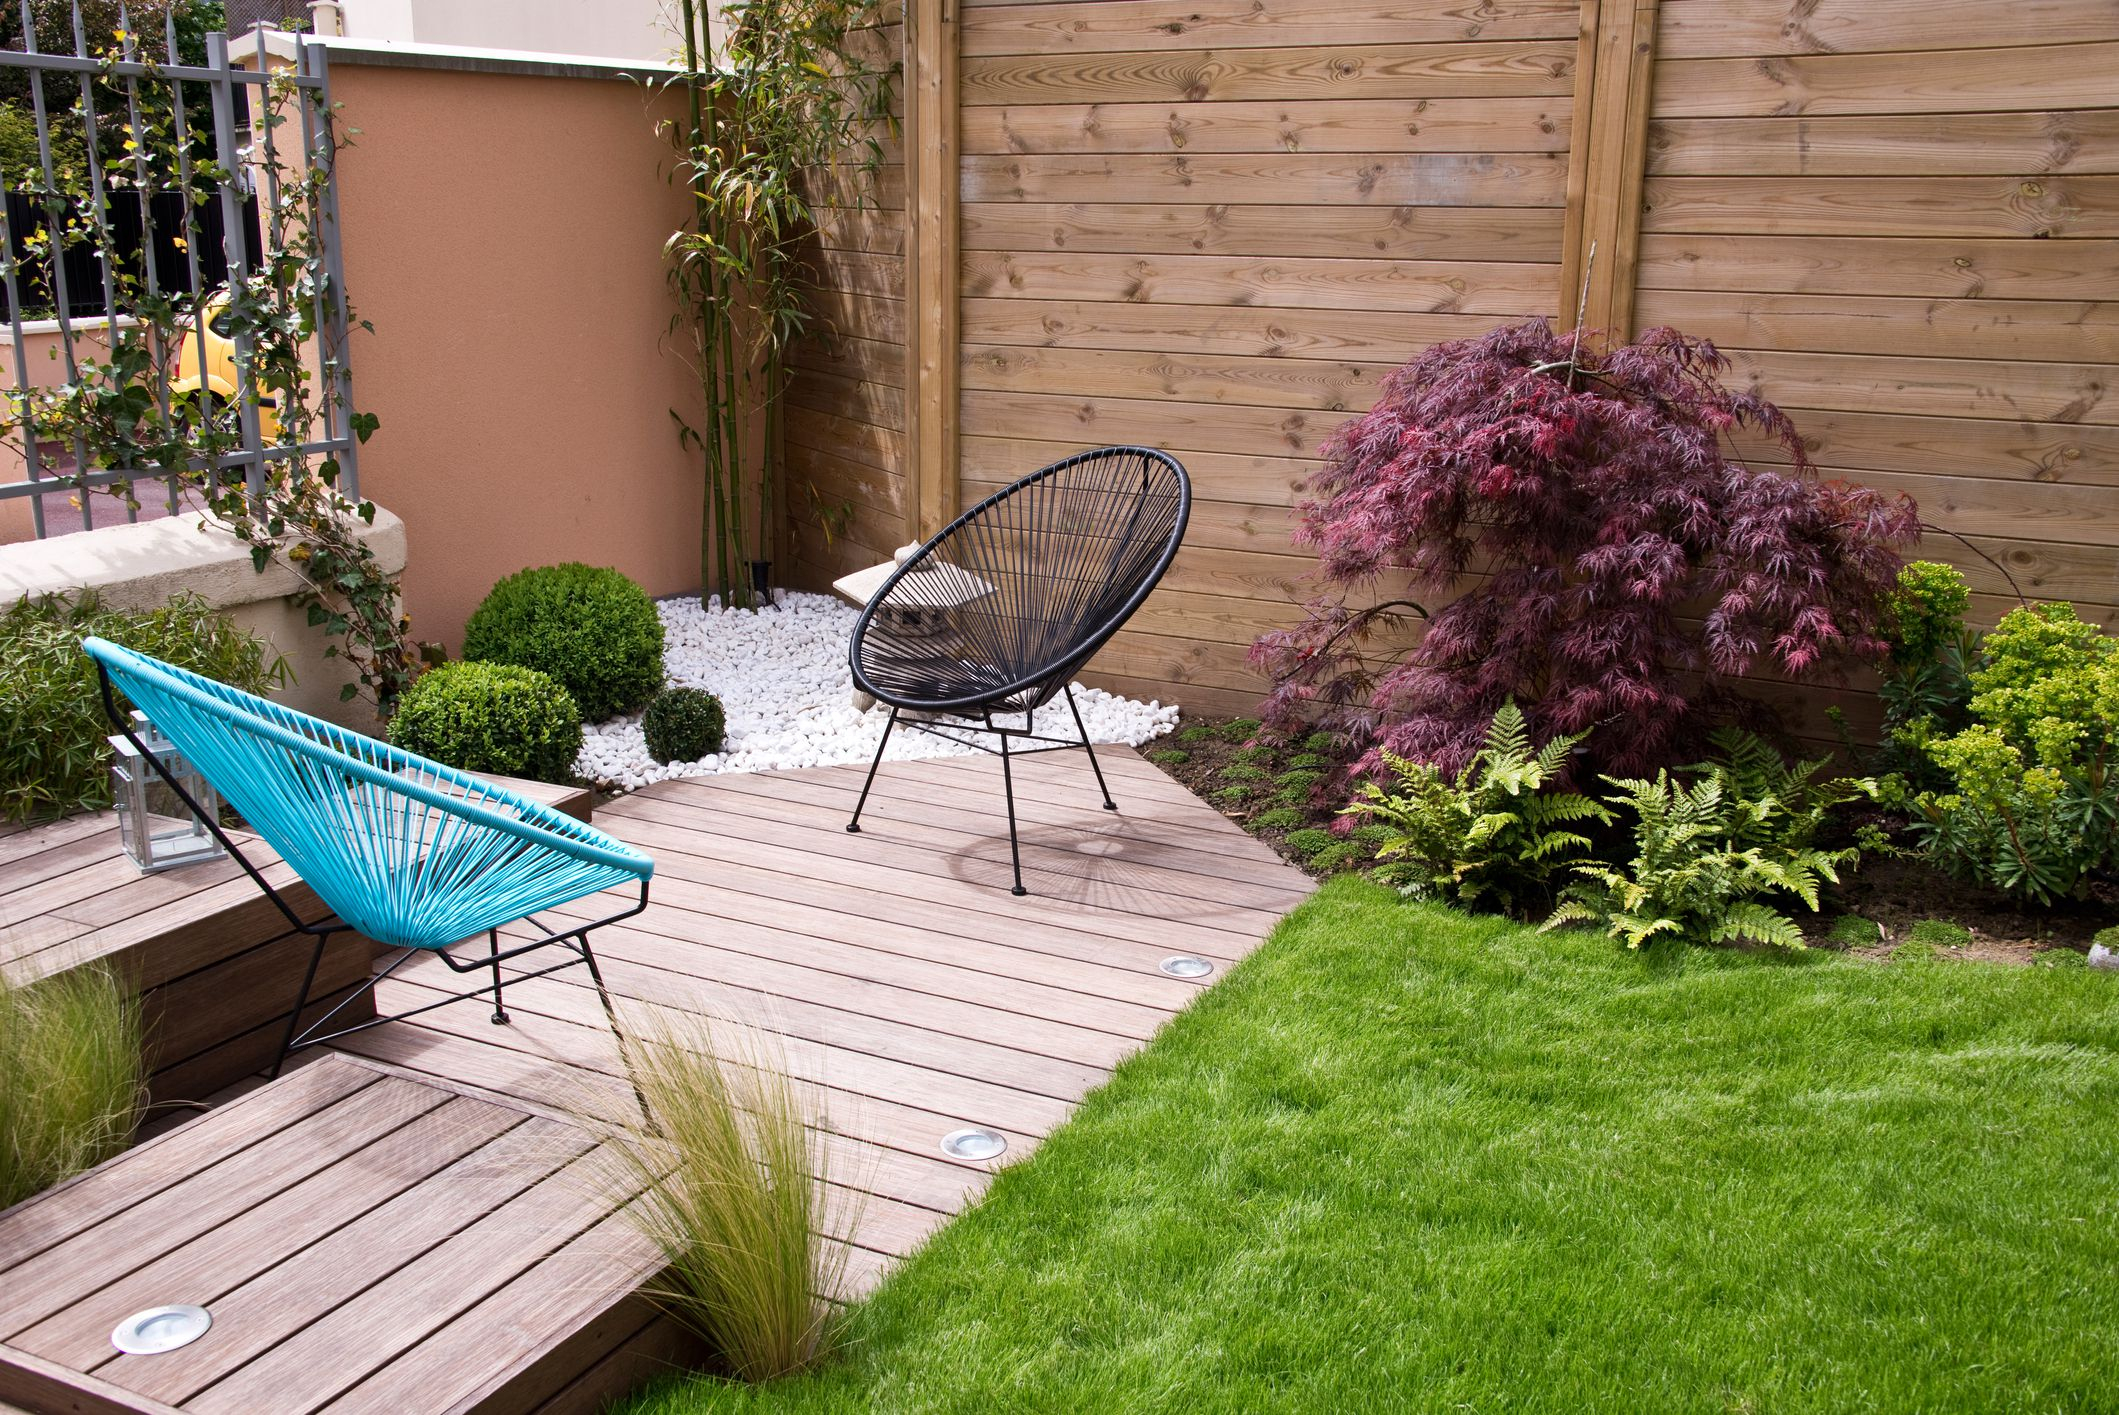 9 Small Garden Design Ideas On A Budget Small Garden Ideas intended for Small Backyard Design Ideas On A Budget